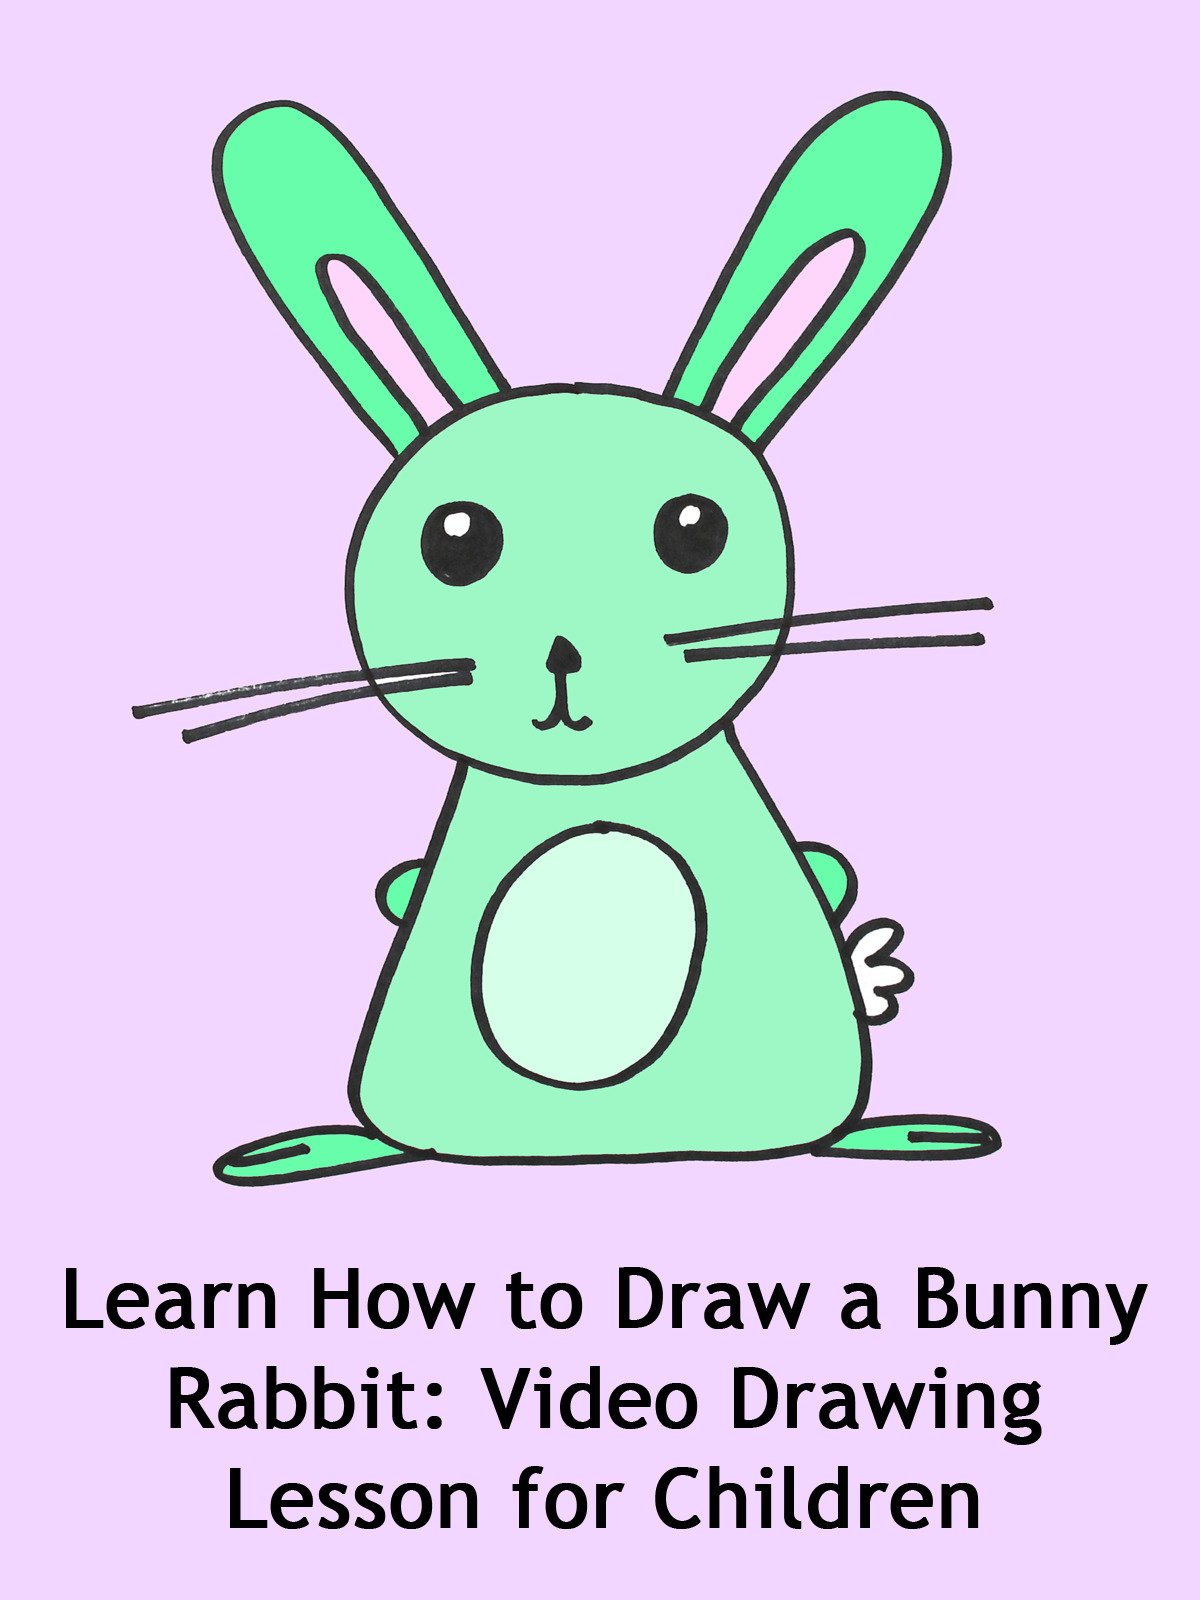 Learn How to Draw a Bunny Rabbit: Video Drawing Lesson for Children